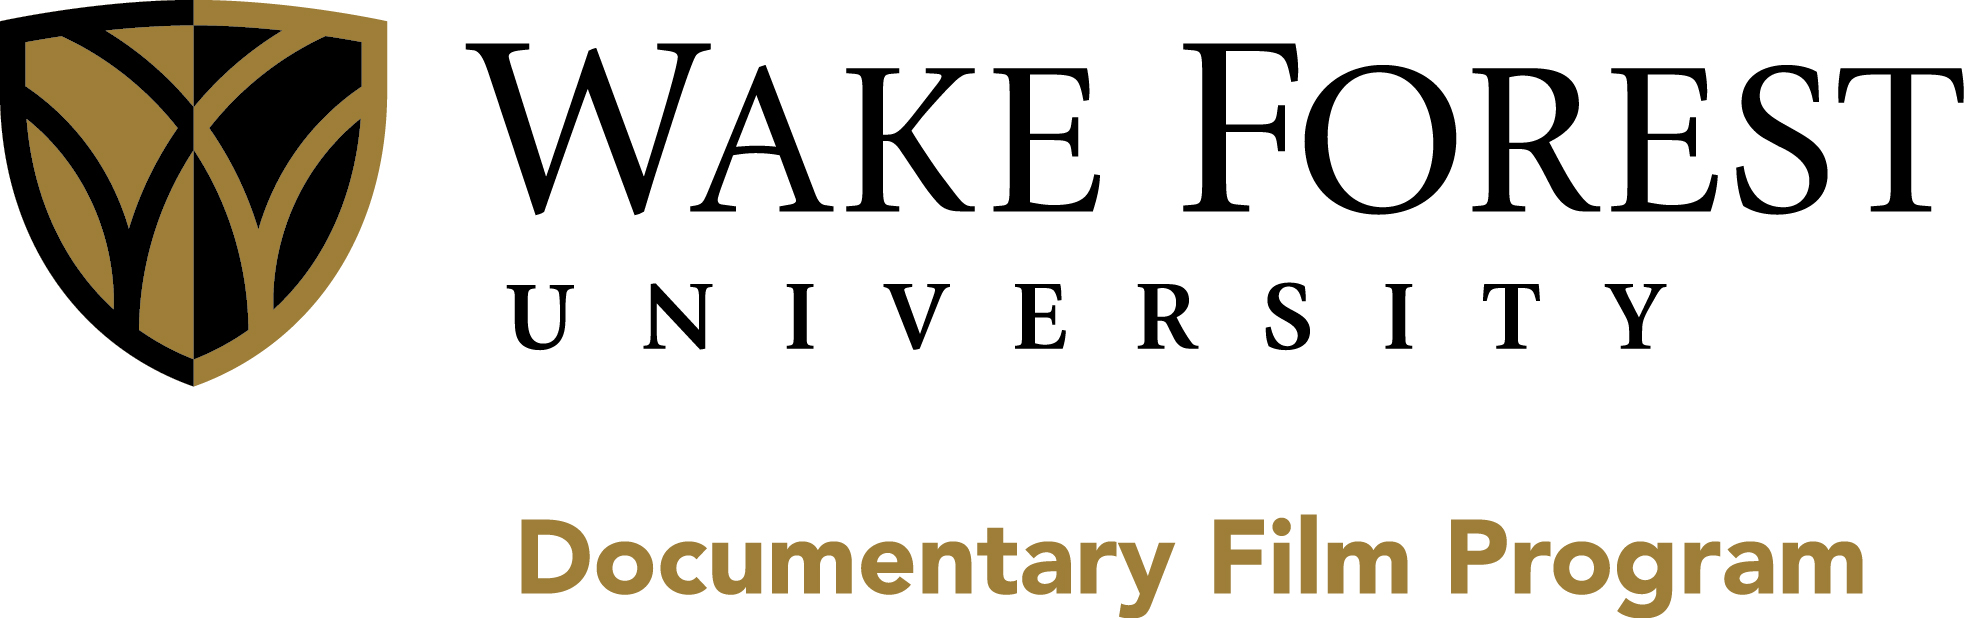 Documentary Film Program